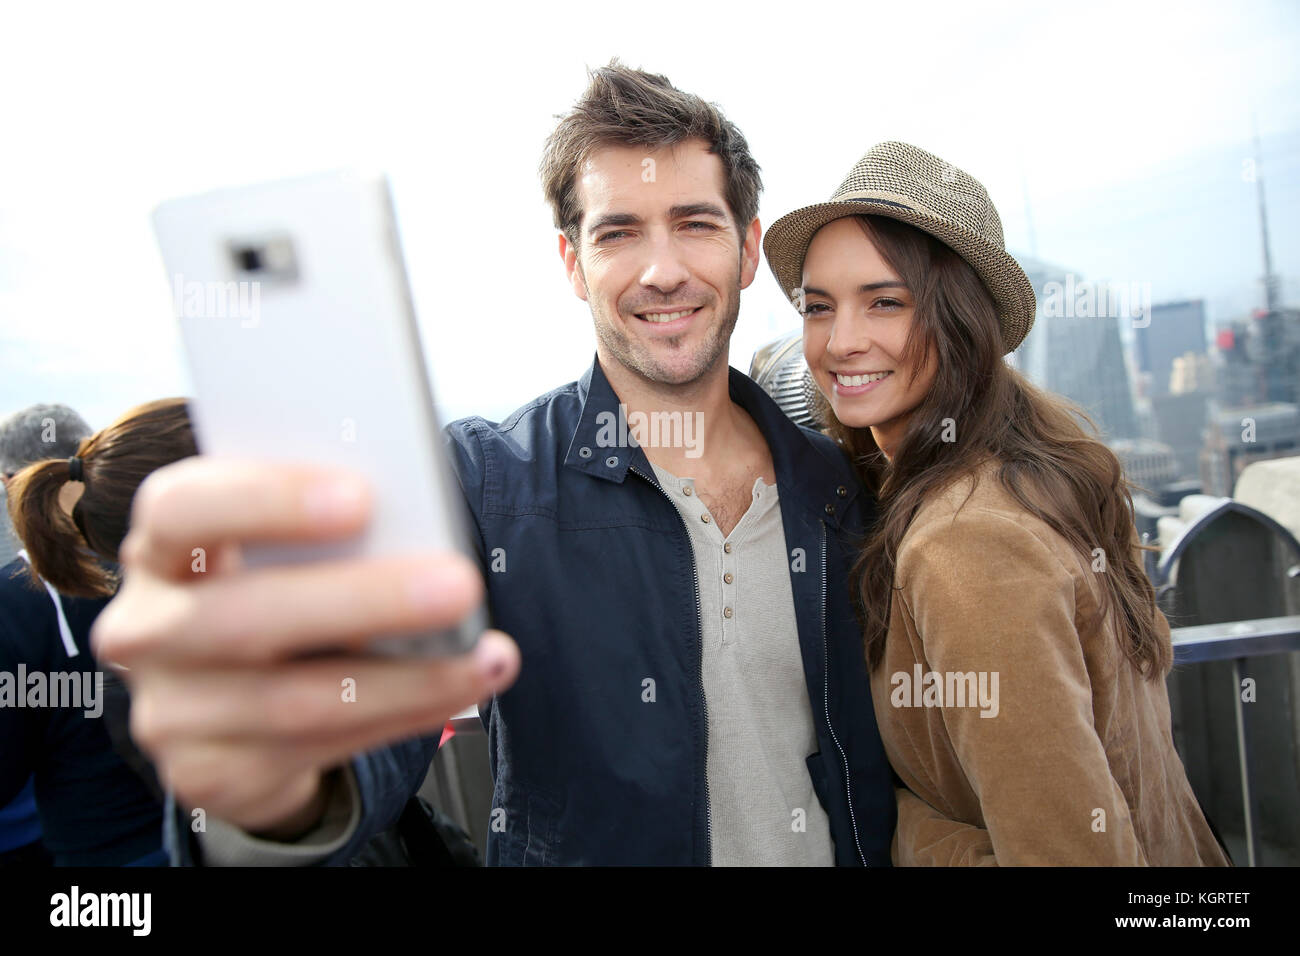 Couple taking picture with smartphone, skyline in background Stock Photo